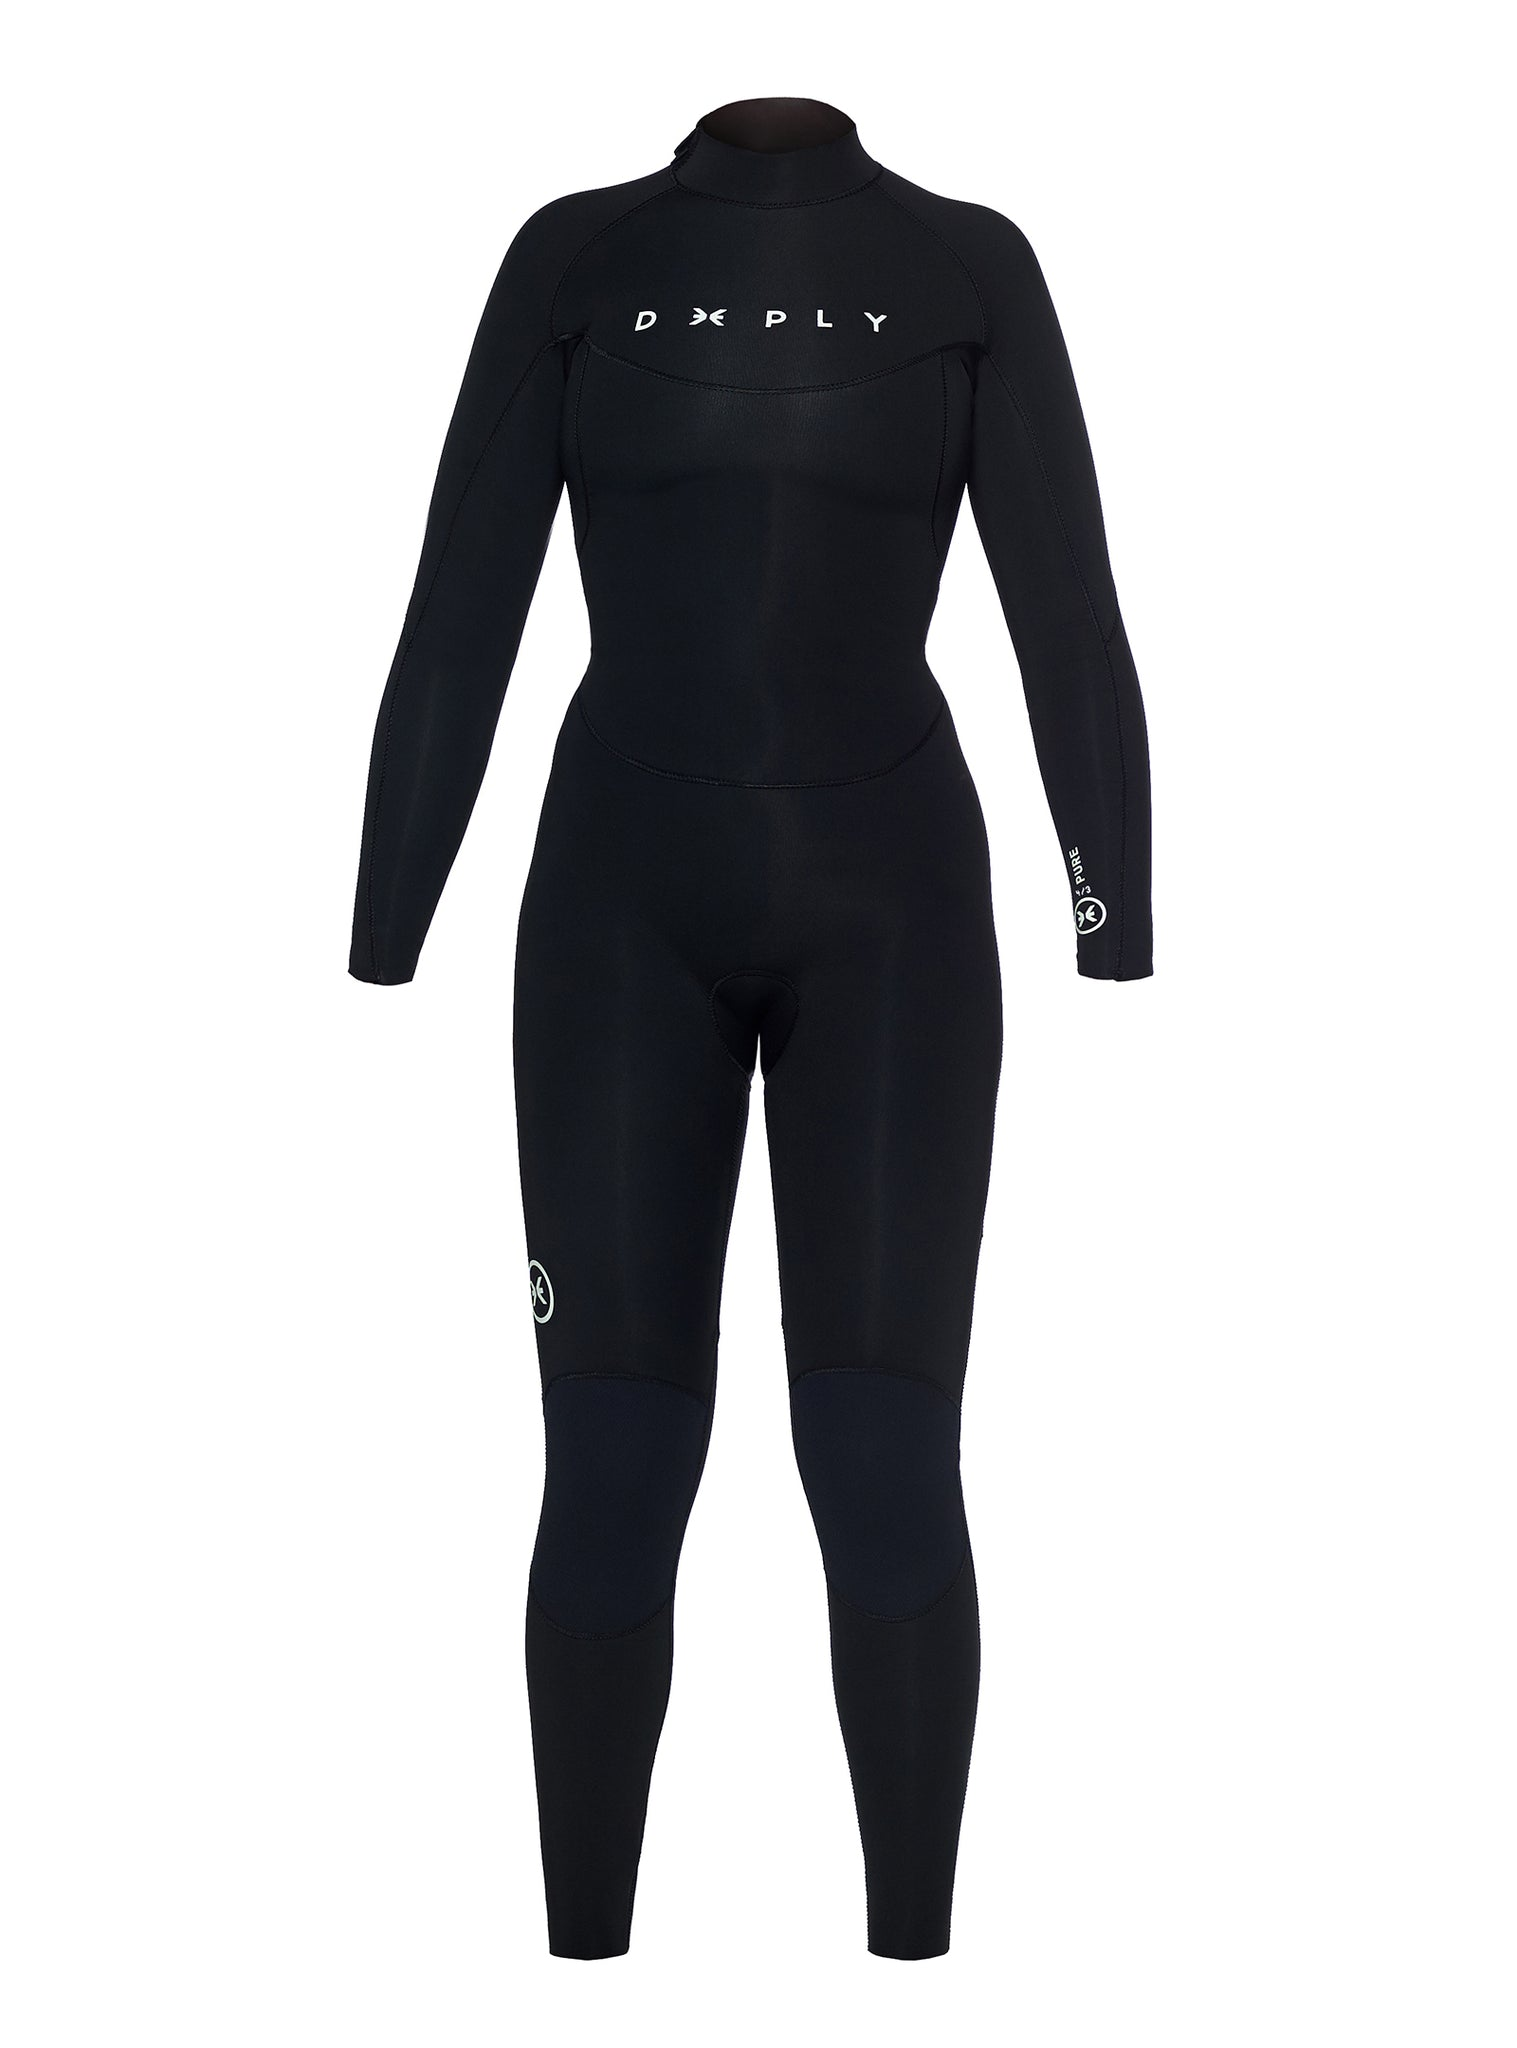 Wetsuit Woman Pure 4/3 Back Zip Black